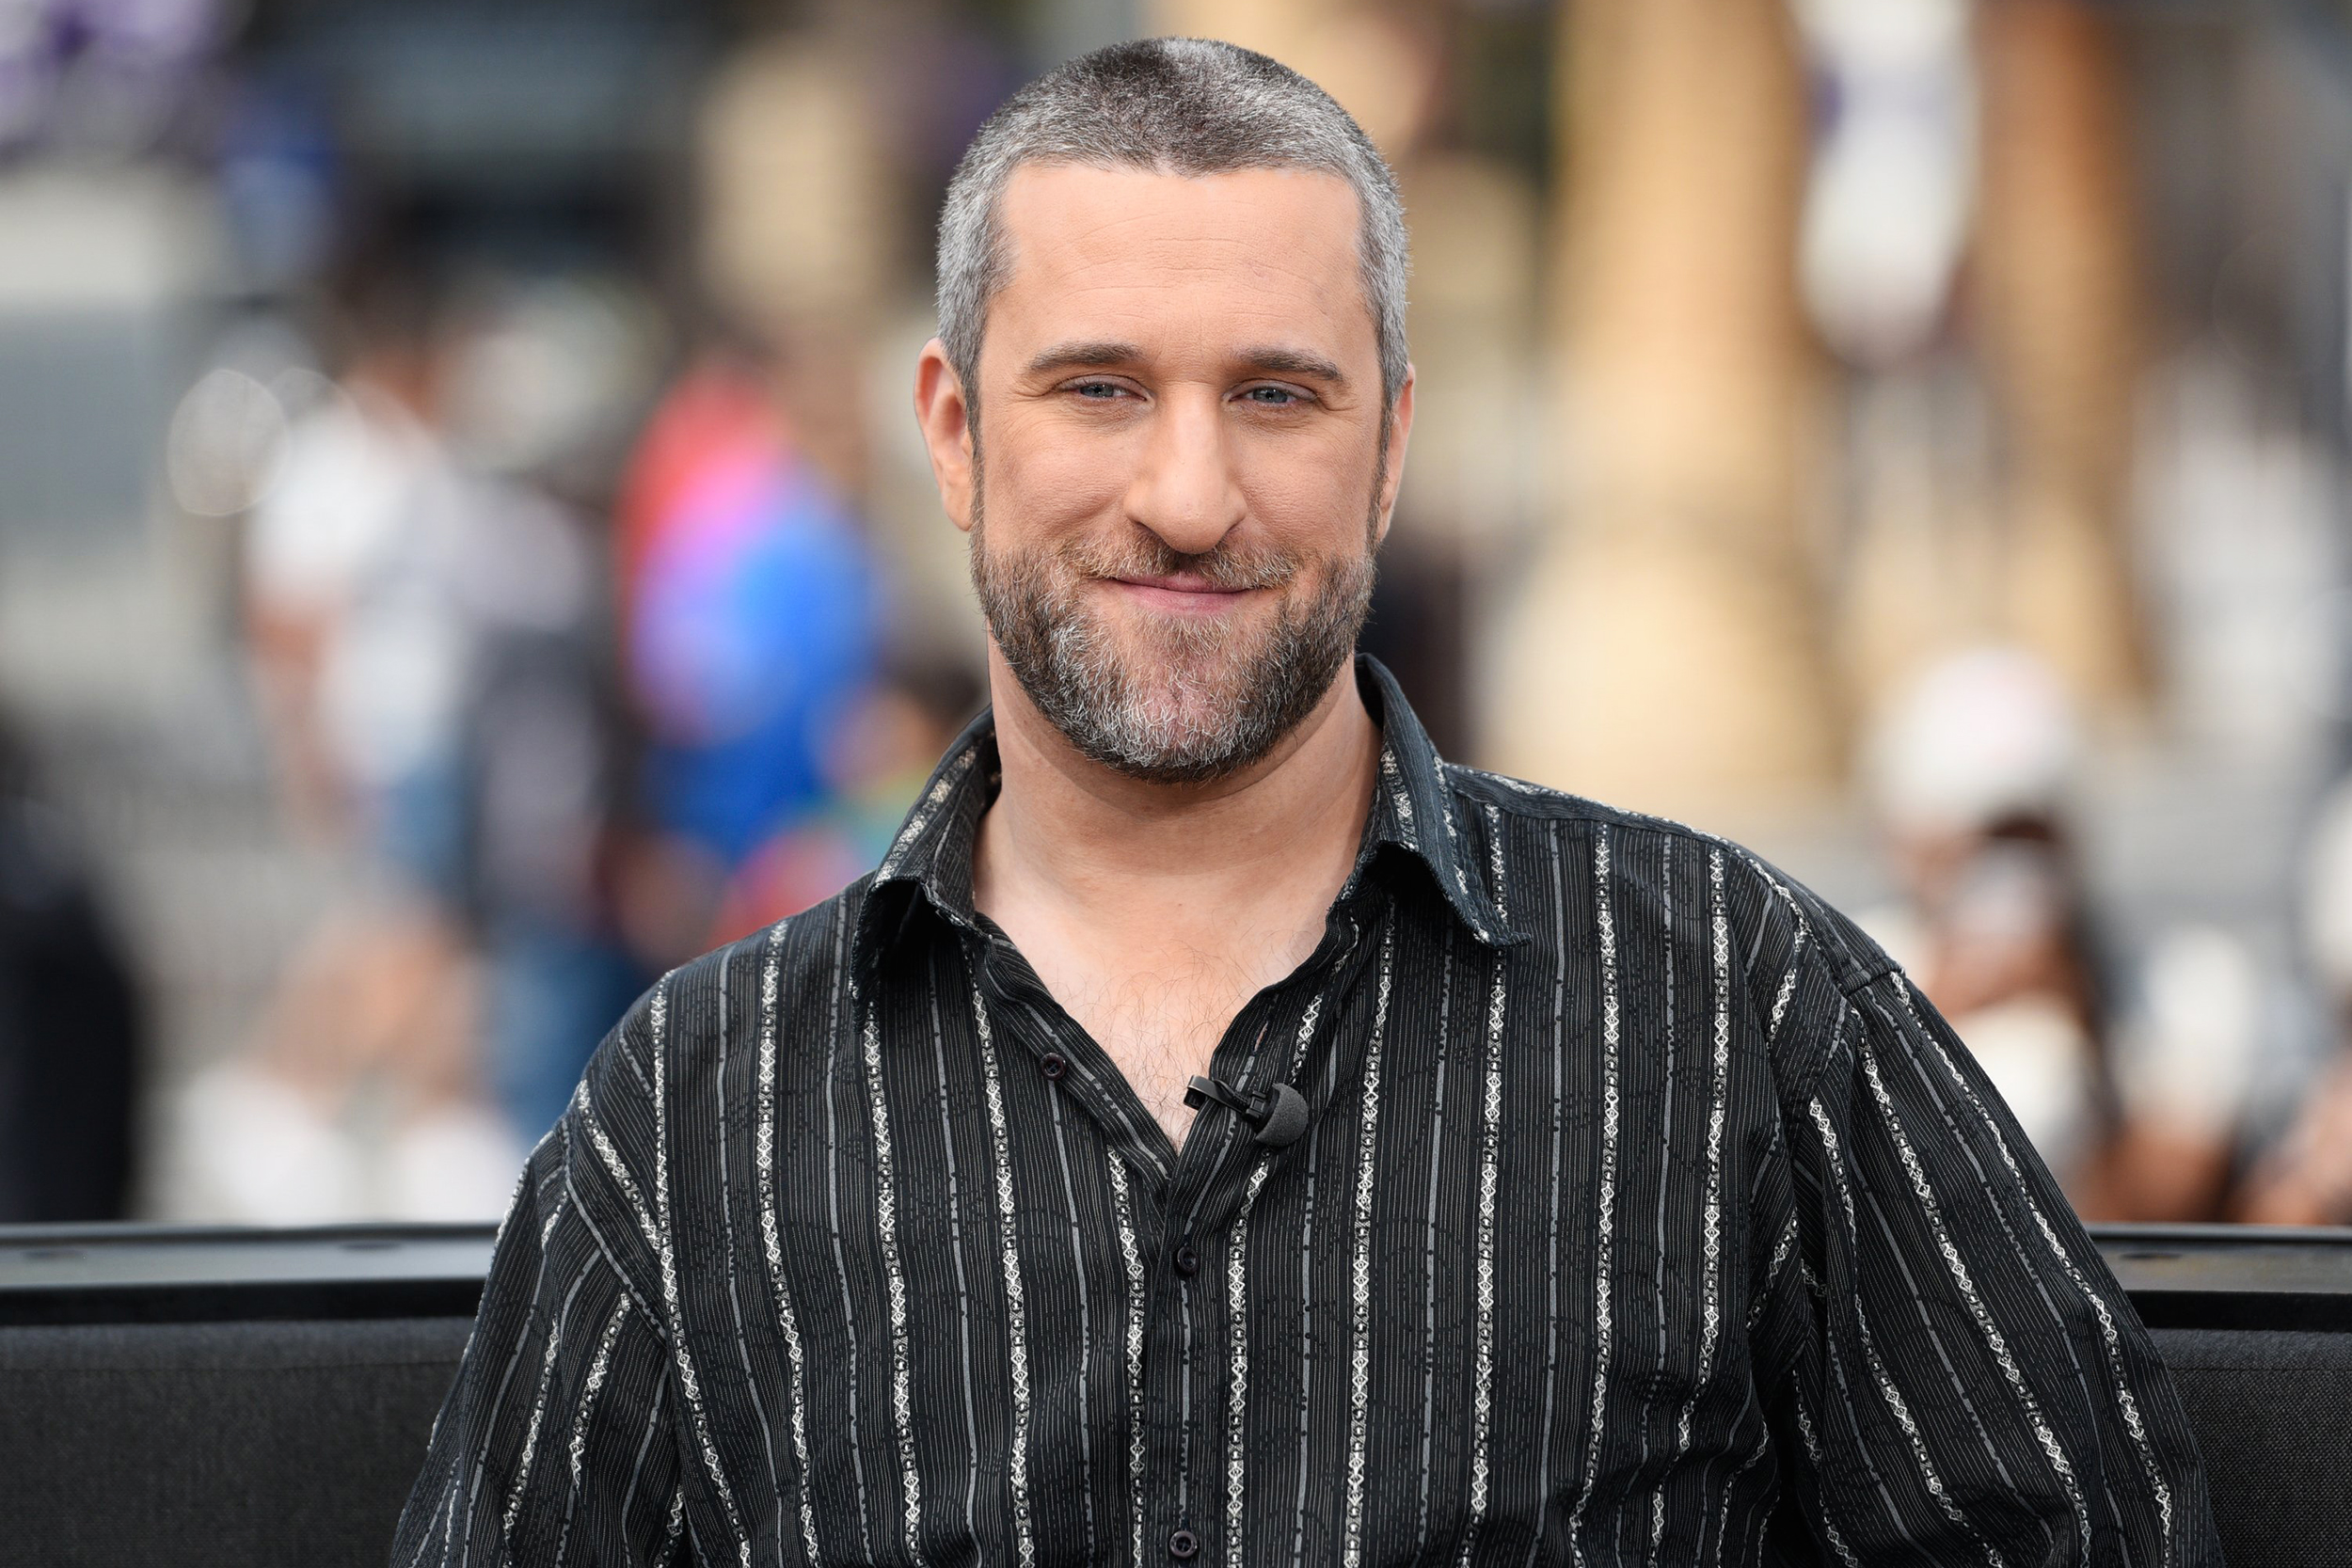 'Saved by the Bell' star Dustin Diamond begins chemo for stage 4 lung cancer